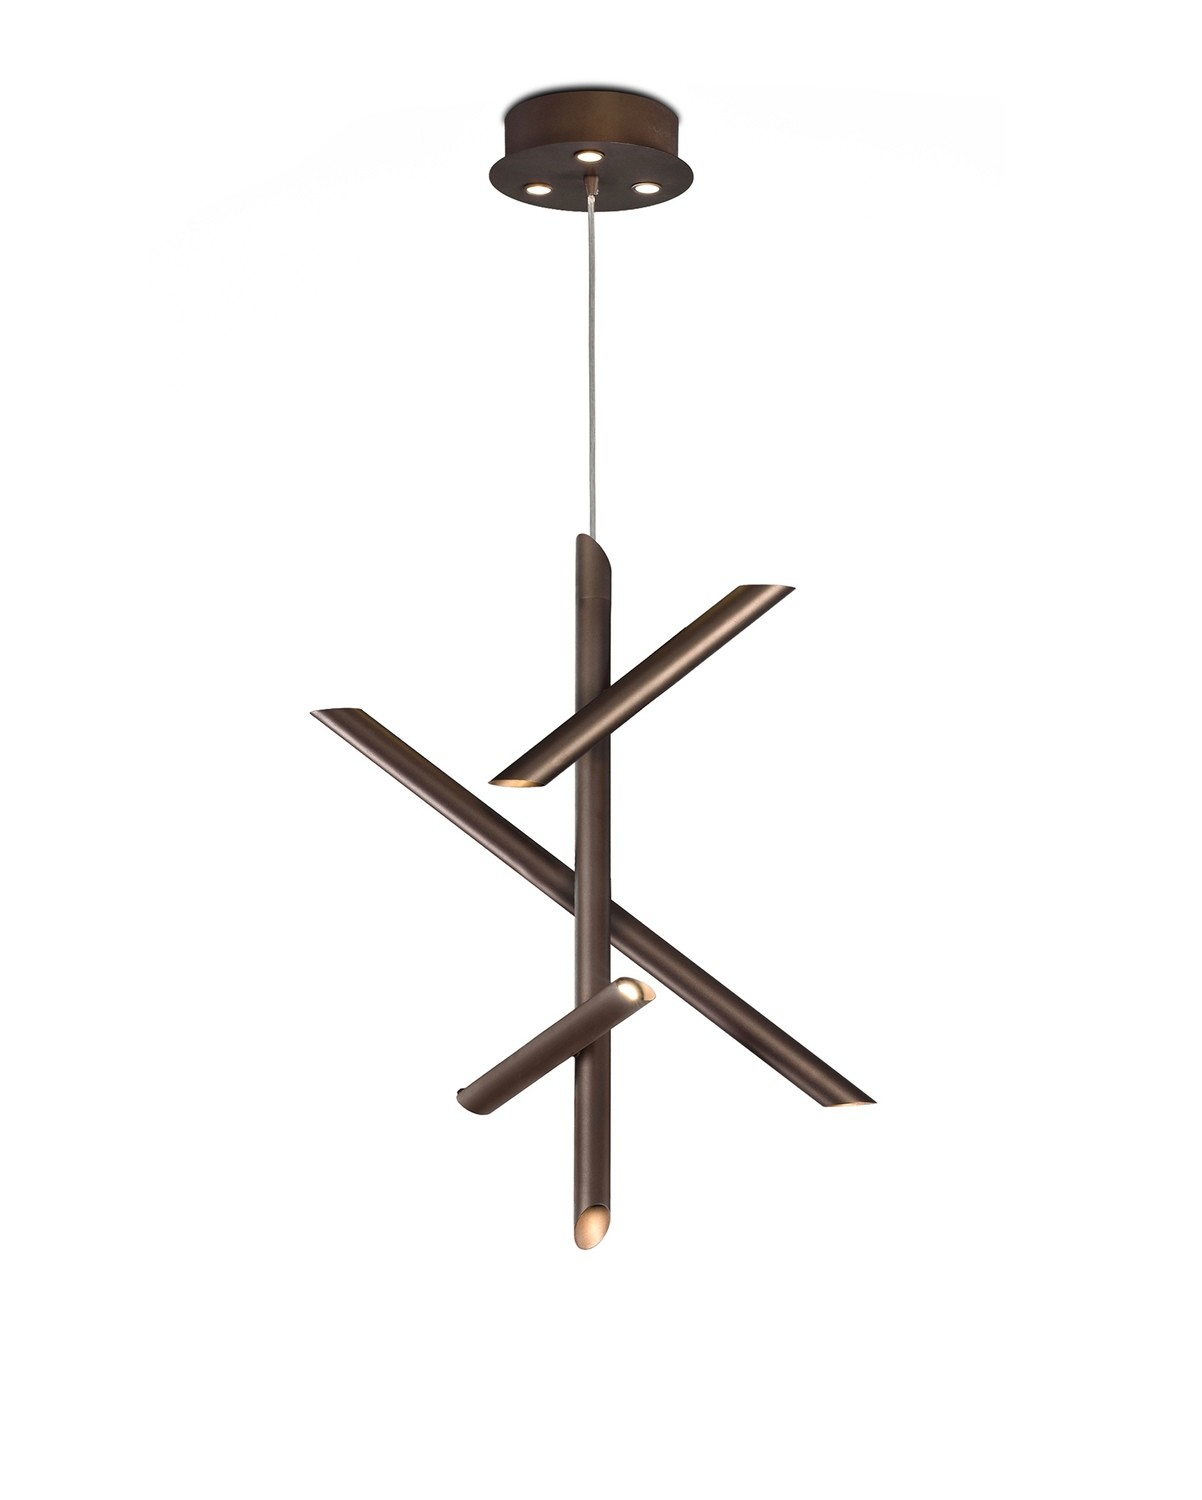 Take Bronze Pendant 30W LED 3000K, 2700lm, Dimmable, Bronze, 3yrs Warranty